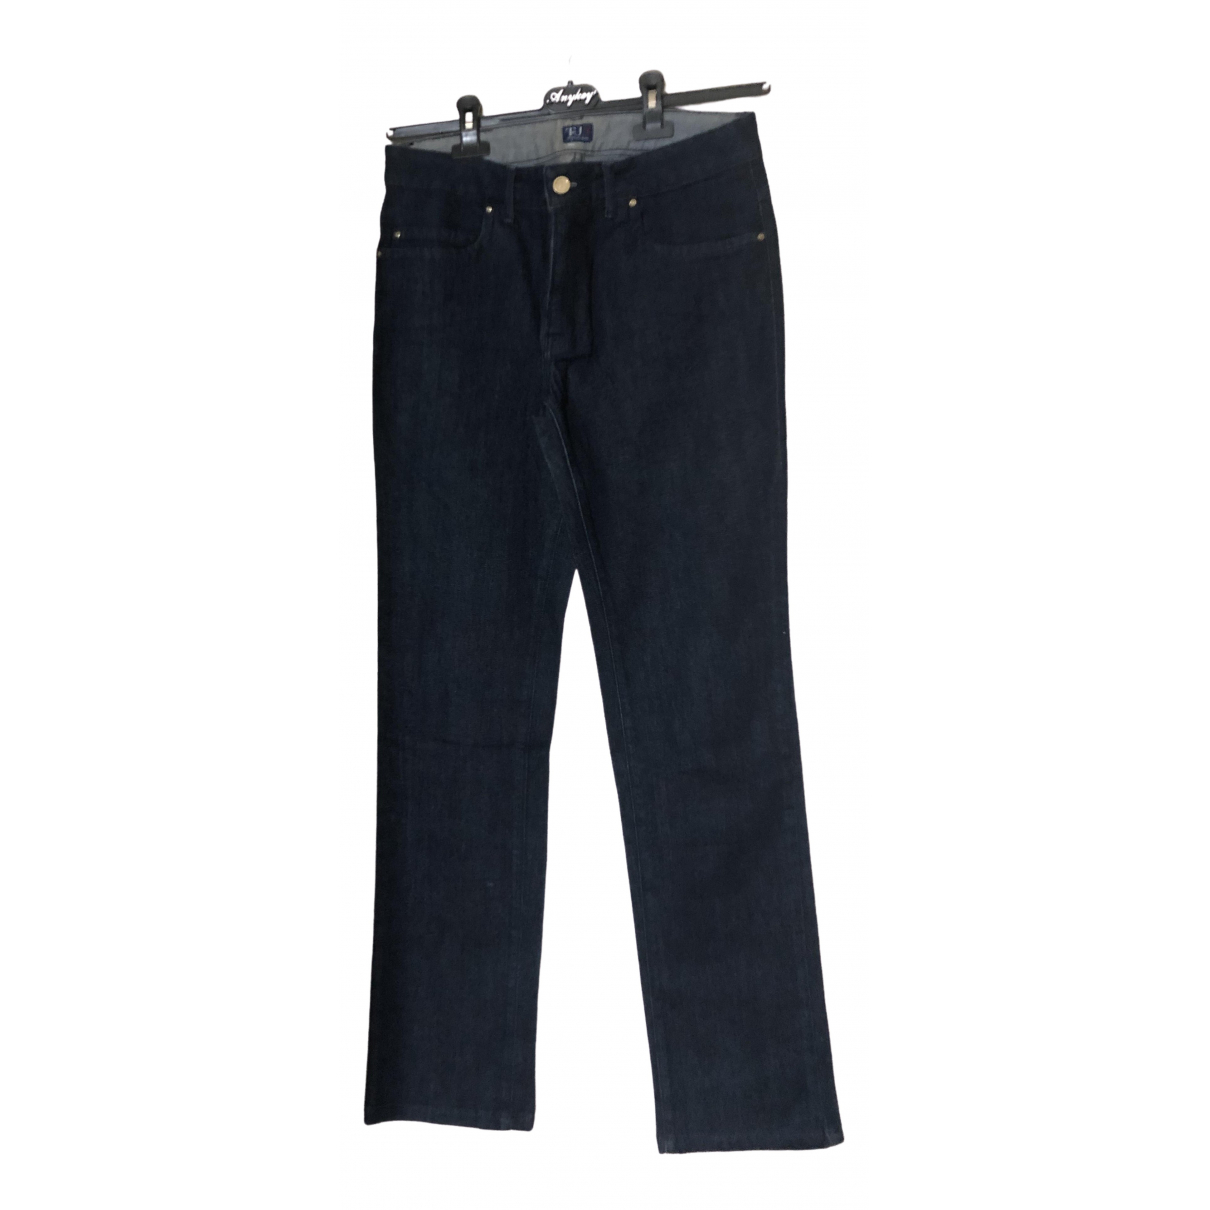 Trussardi Jeans \N Blue Cotton Trousers for Men 44 IT